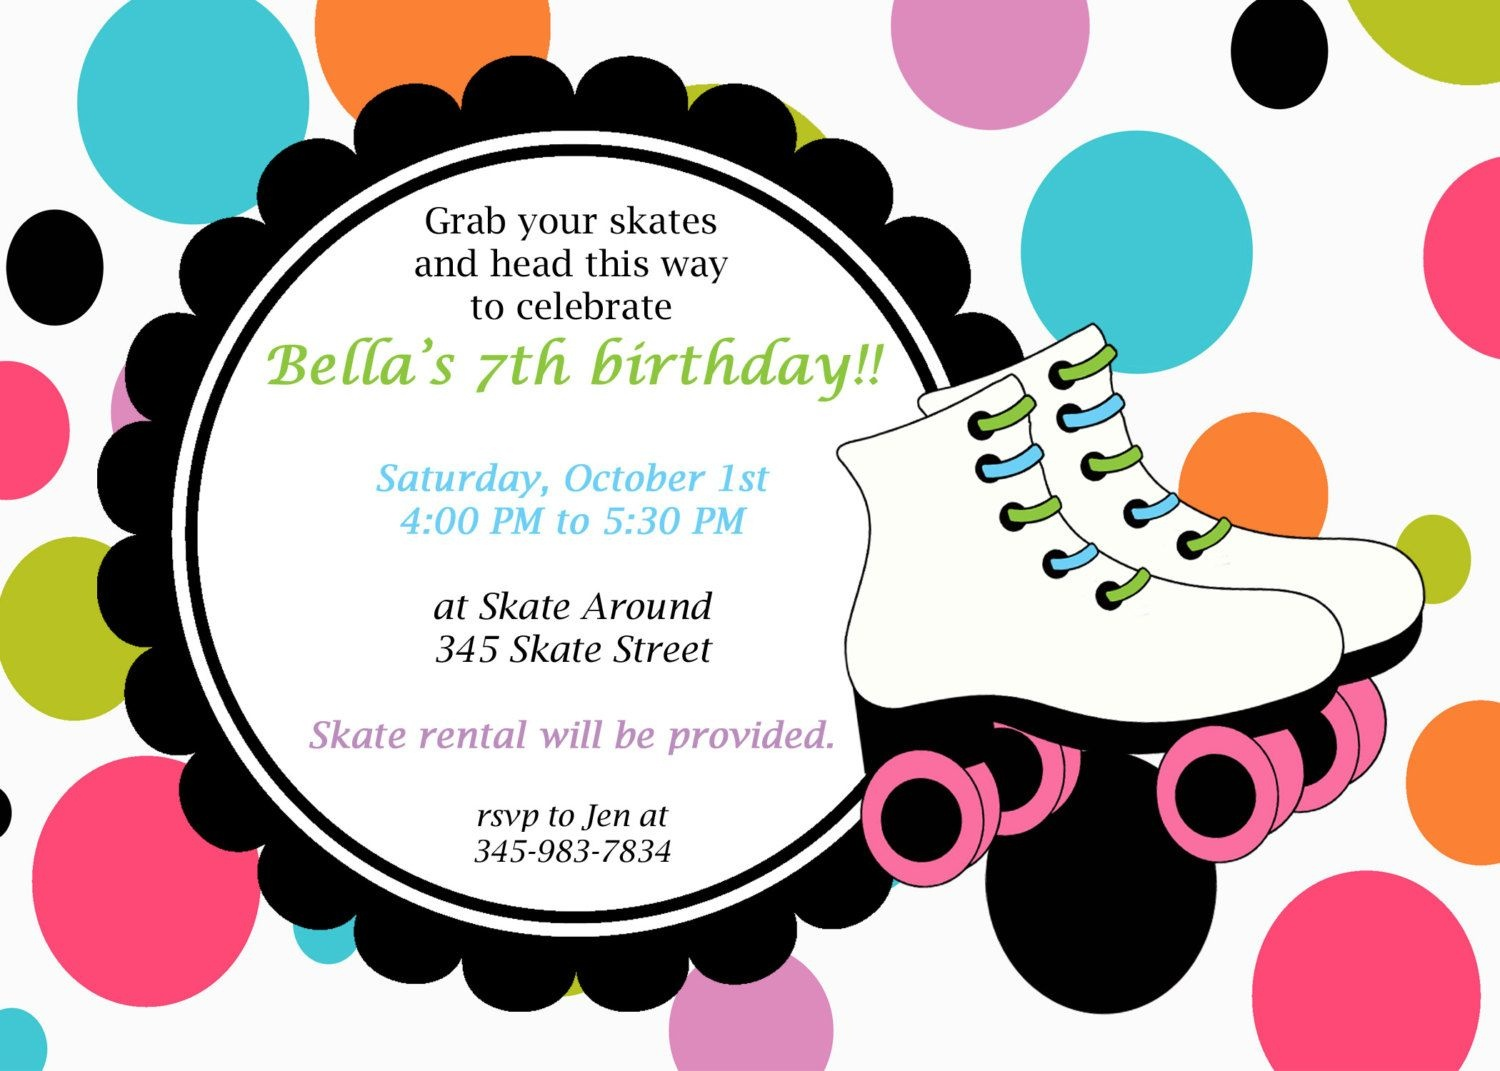 Printable Roller Skating Invitations | Birthday Ideas In 2019 - Free Printable Skateboard Birthday Party Invitations